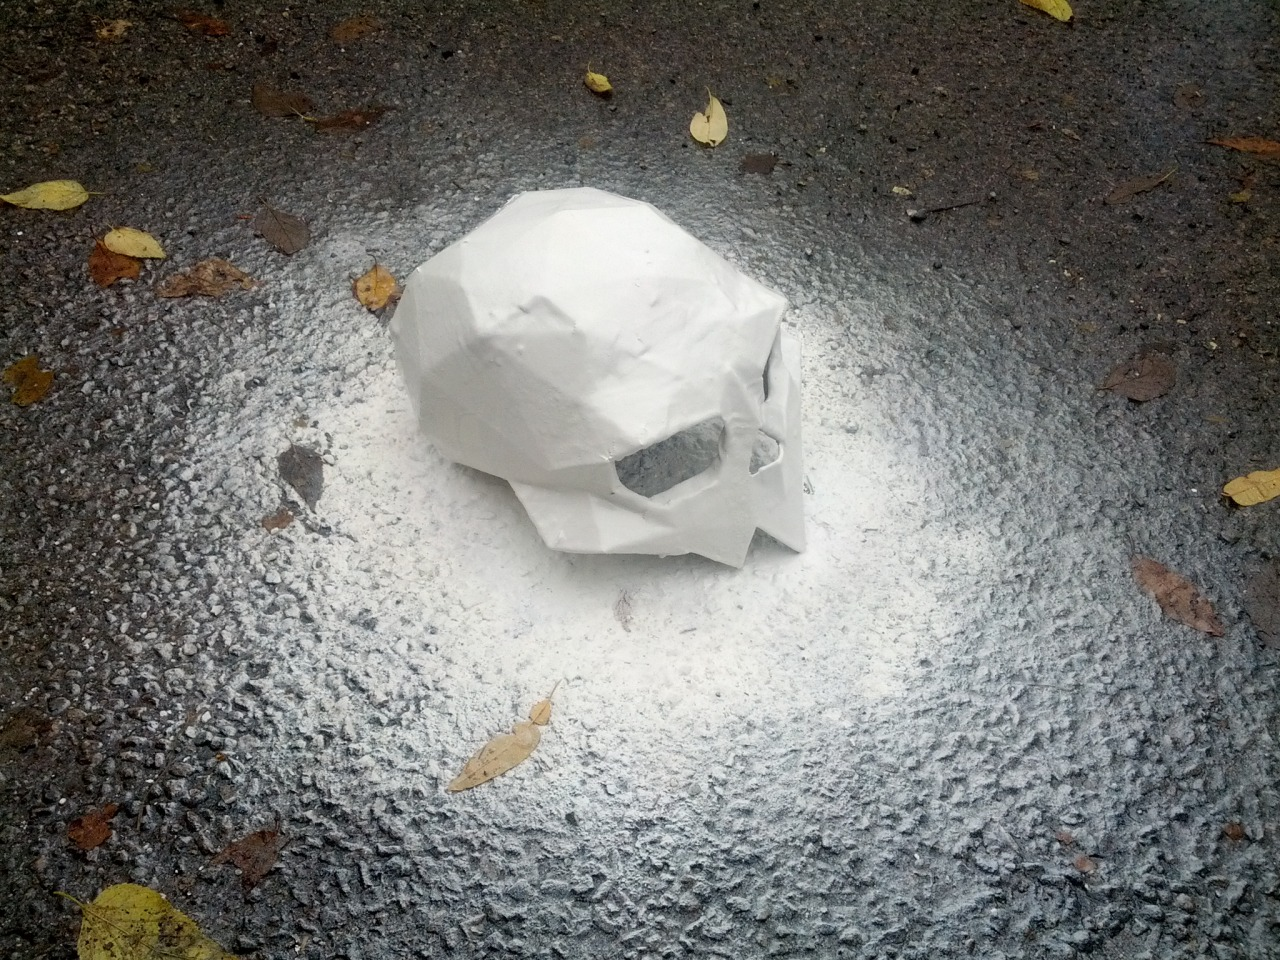 The skull sits on an asphalt surface, surrounded by wet leaves. The skull and surrounding pavement are all blasted white with spraypaint.